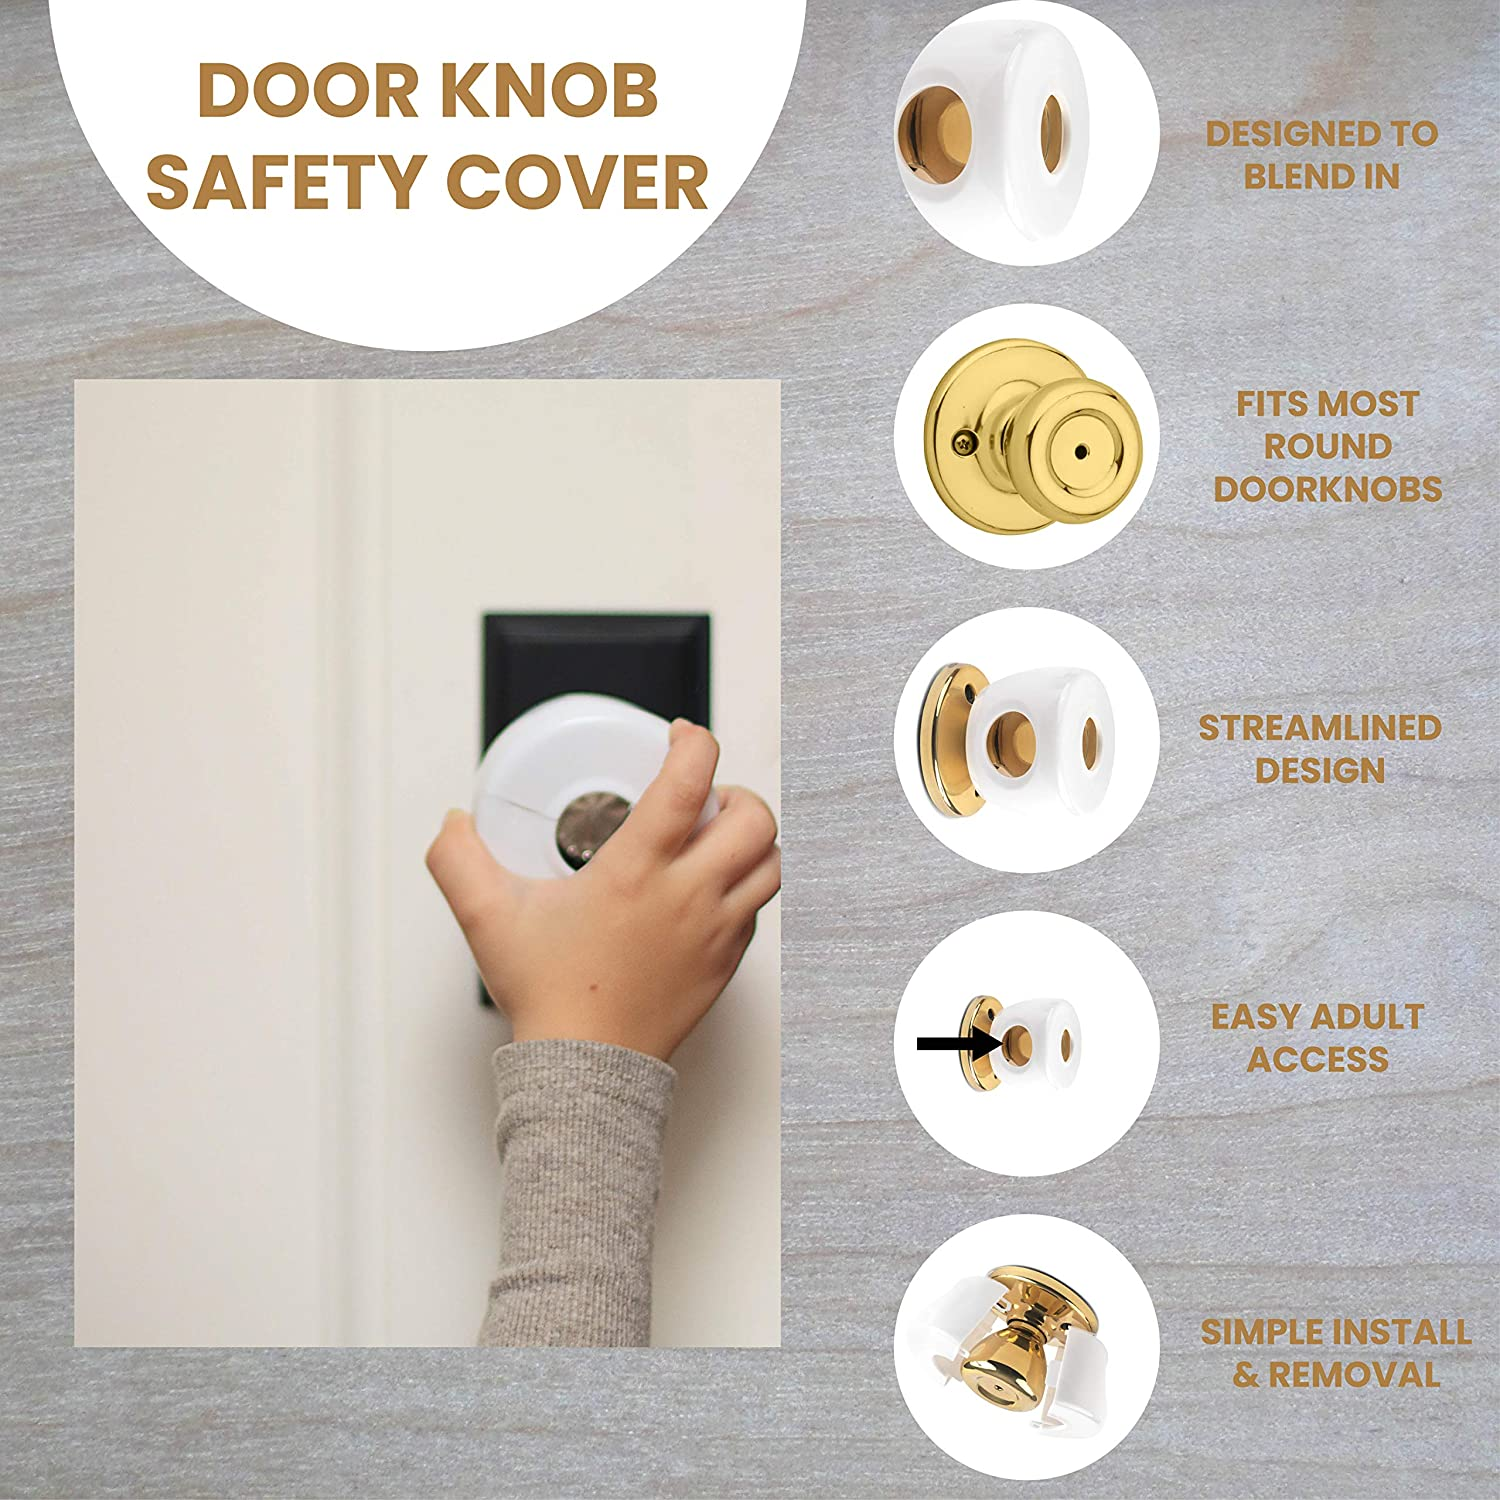 Beautifully Designed To Blend With Doorknob Color Bronze Door Knob Safety Cover Choose 1 of 4 Colors Available Toddler and Baby Safety All Brown - Child Proof Doors 4 Pack By UnaBaby